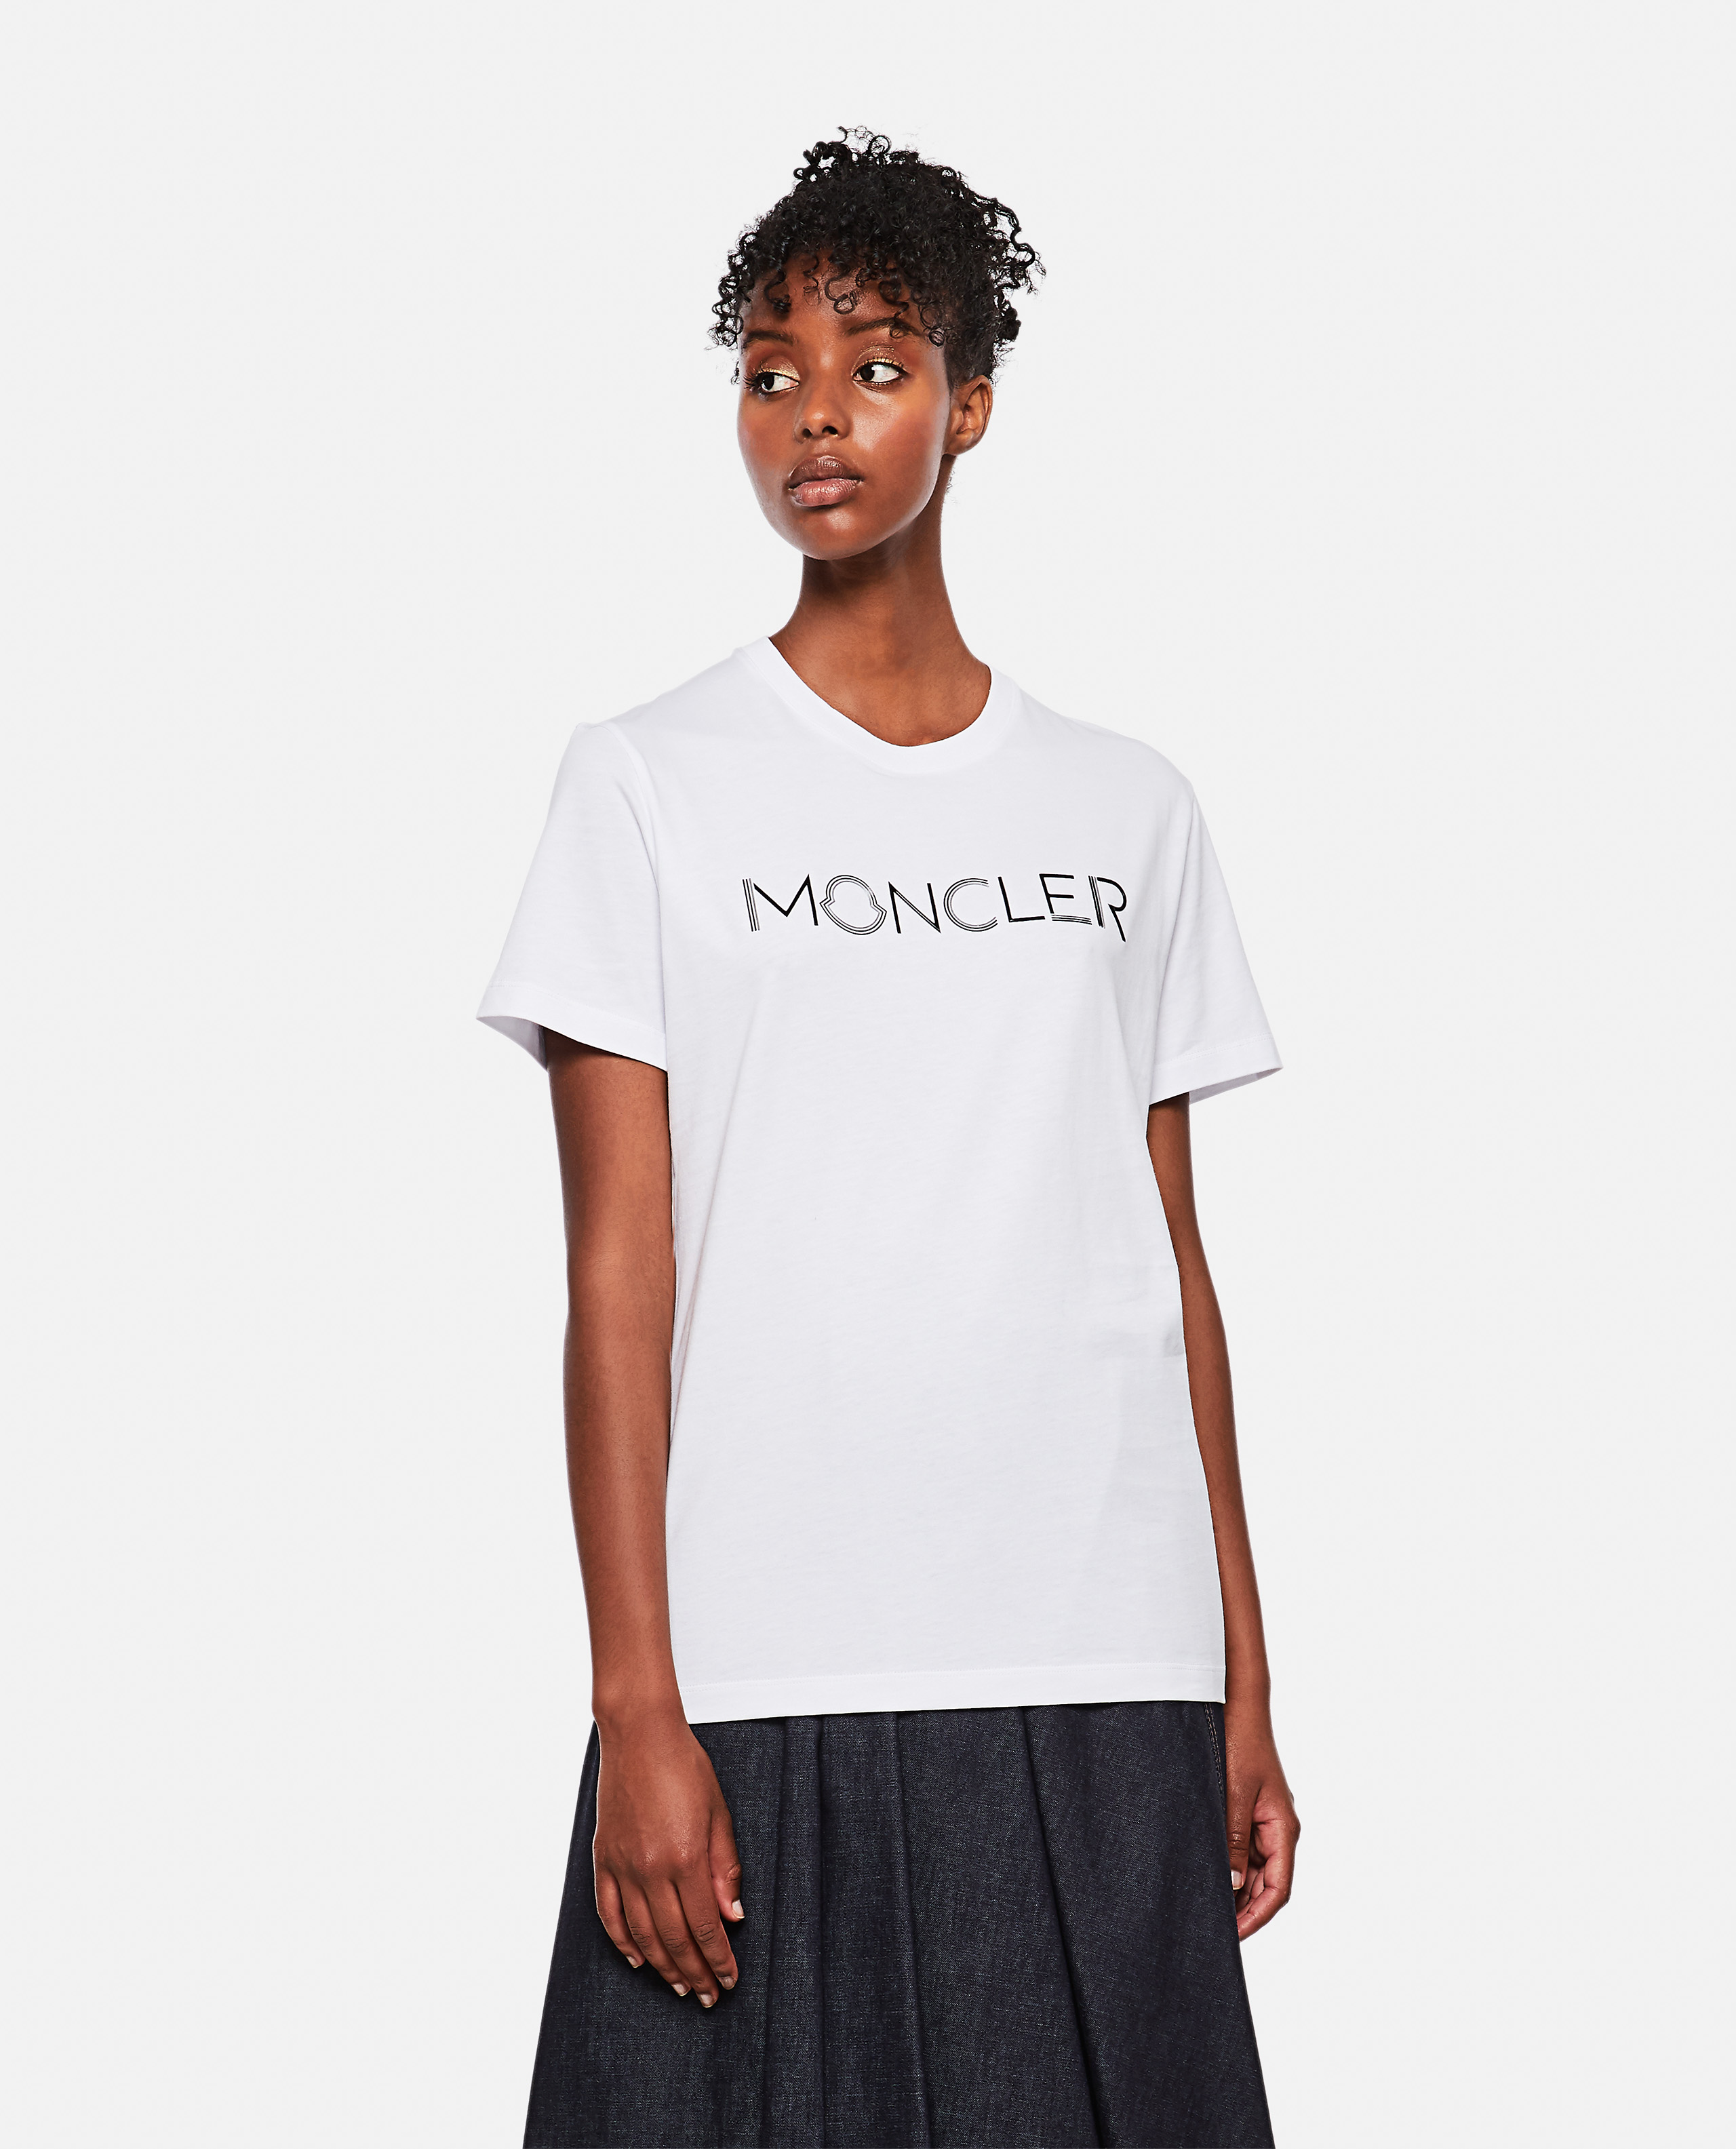 Moncler MONCLER T-SHIRT WITH LOGO